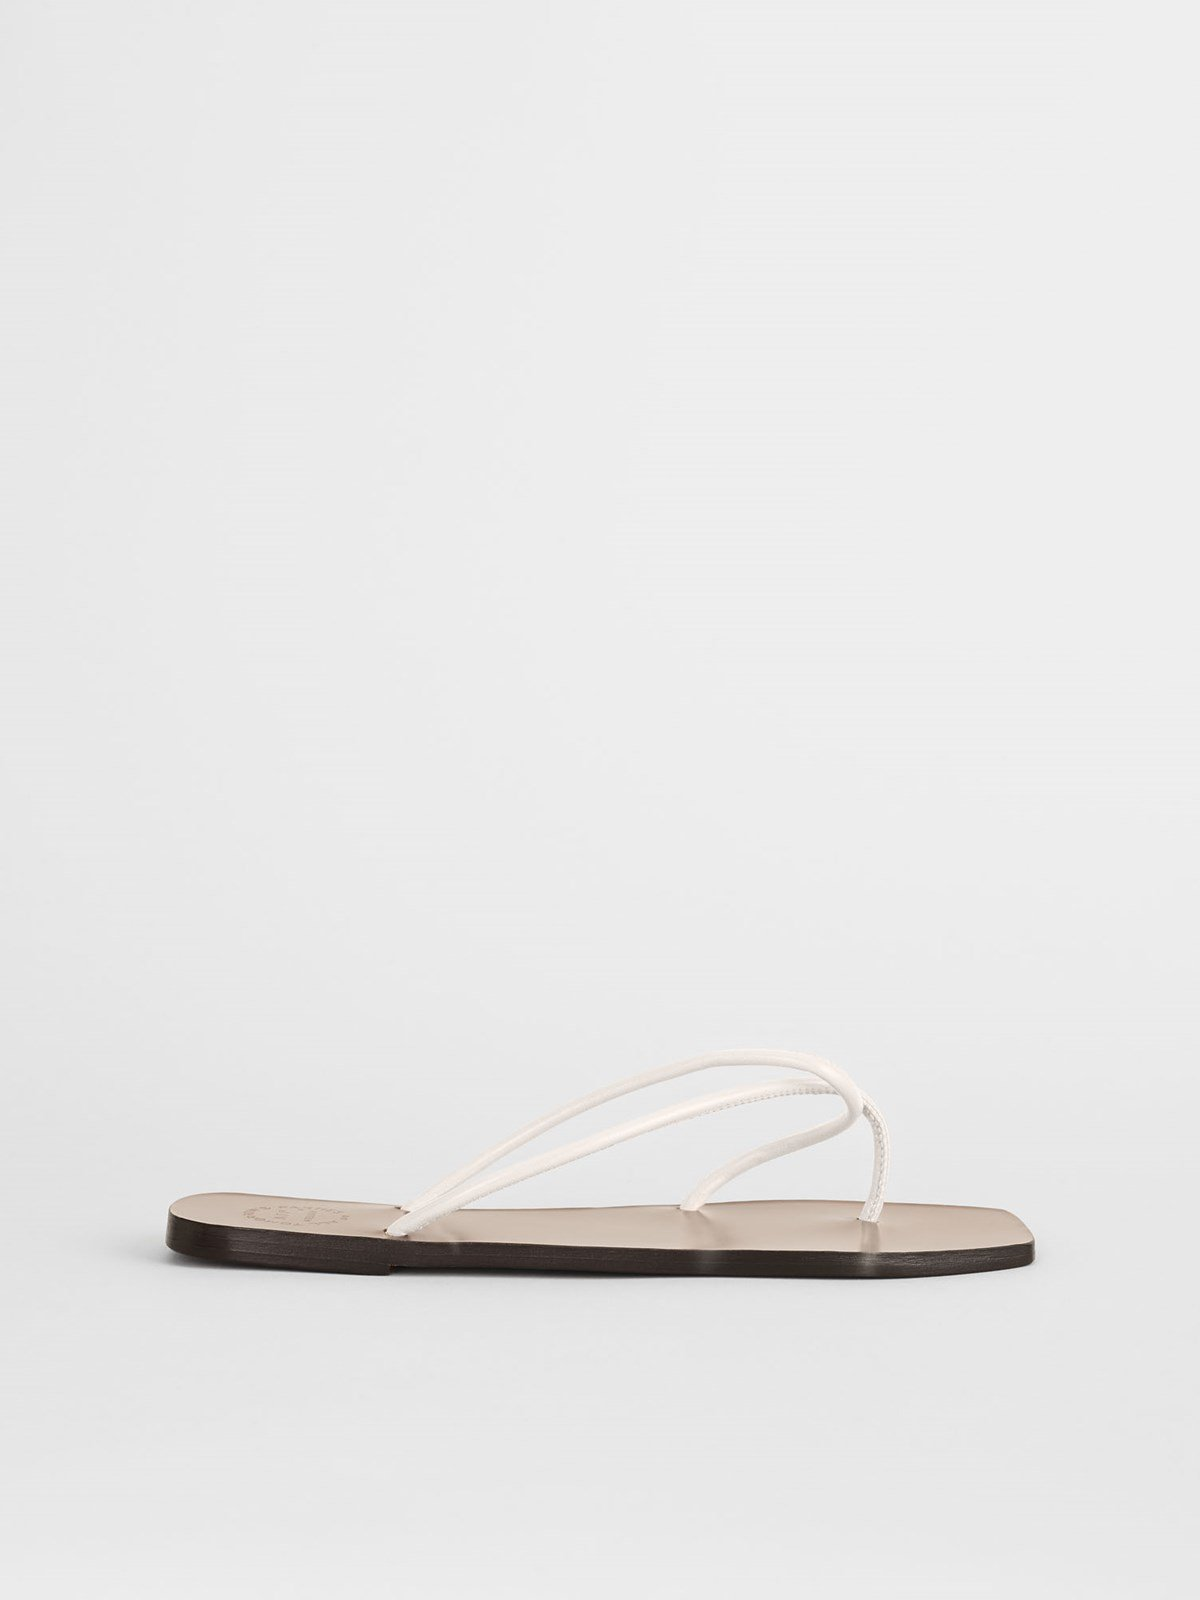 Alessano Ice White Flat sandals